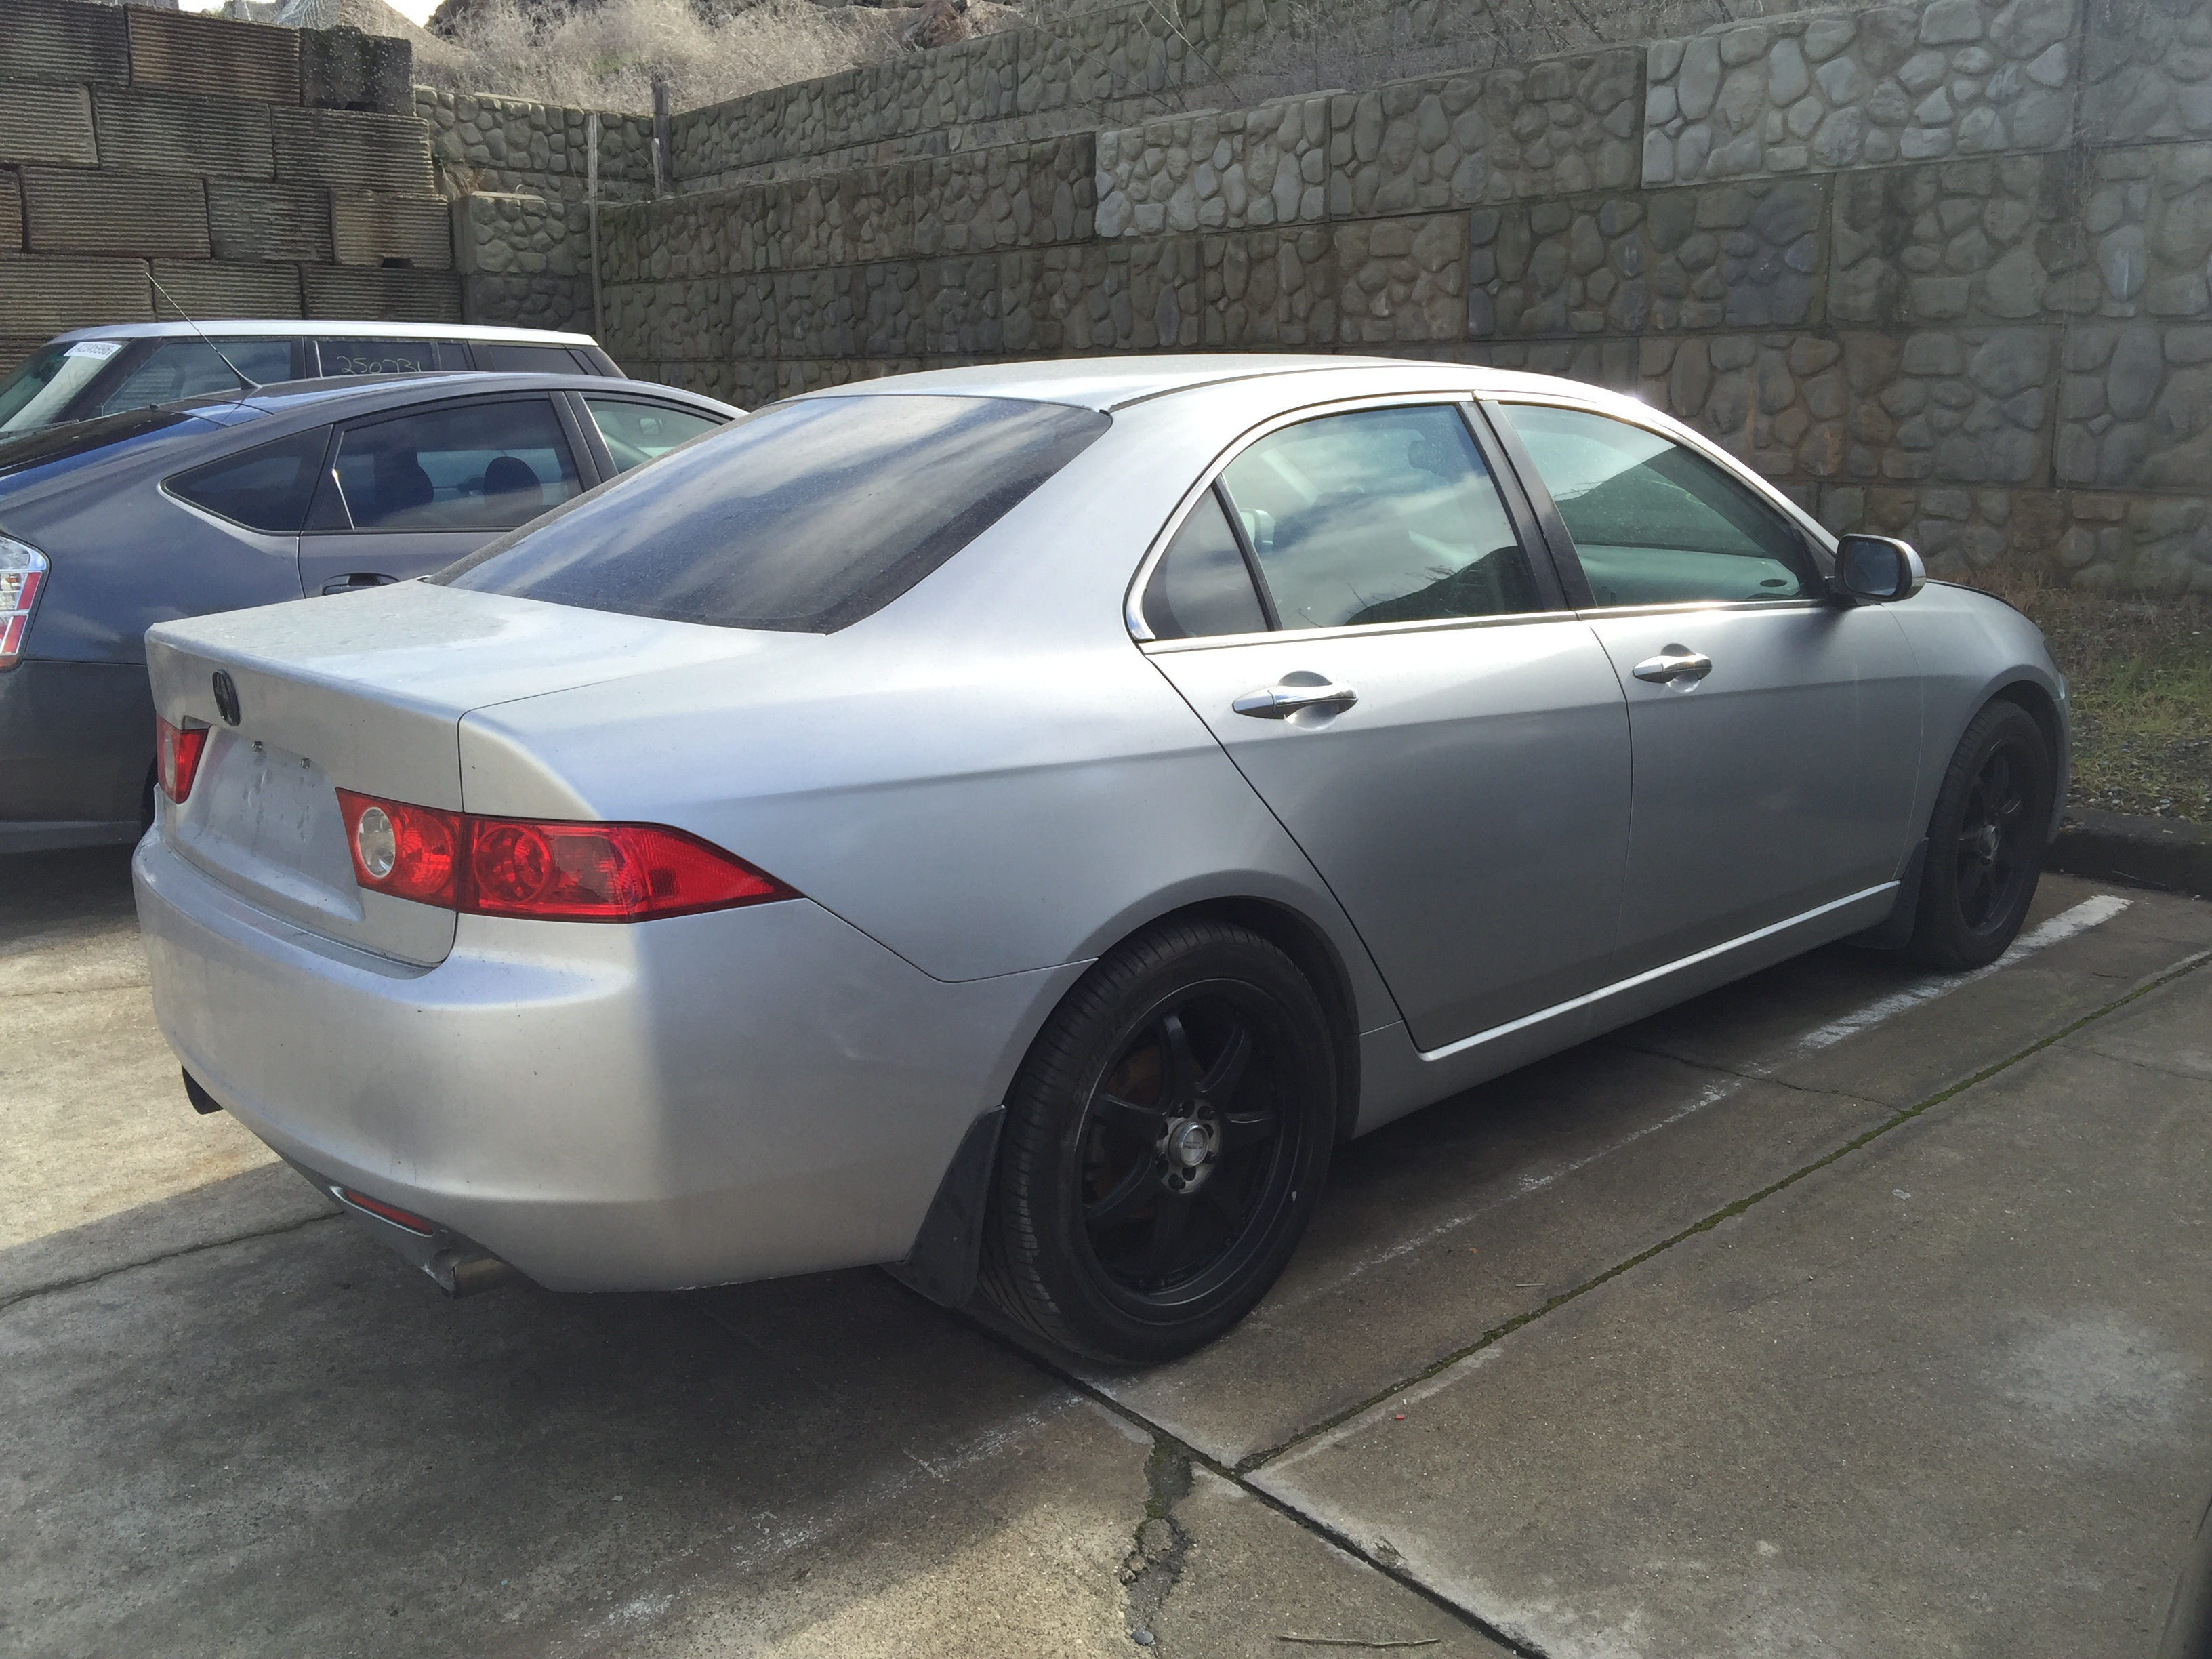 2004 acura tsx parts for sale aa0569 exreme auto parts. Black Bedroom Furniture Sets. Home Design Ideas